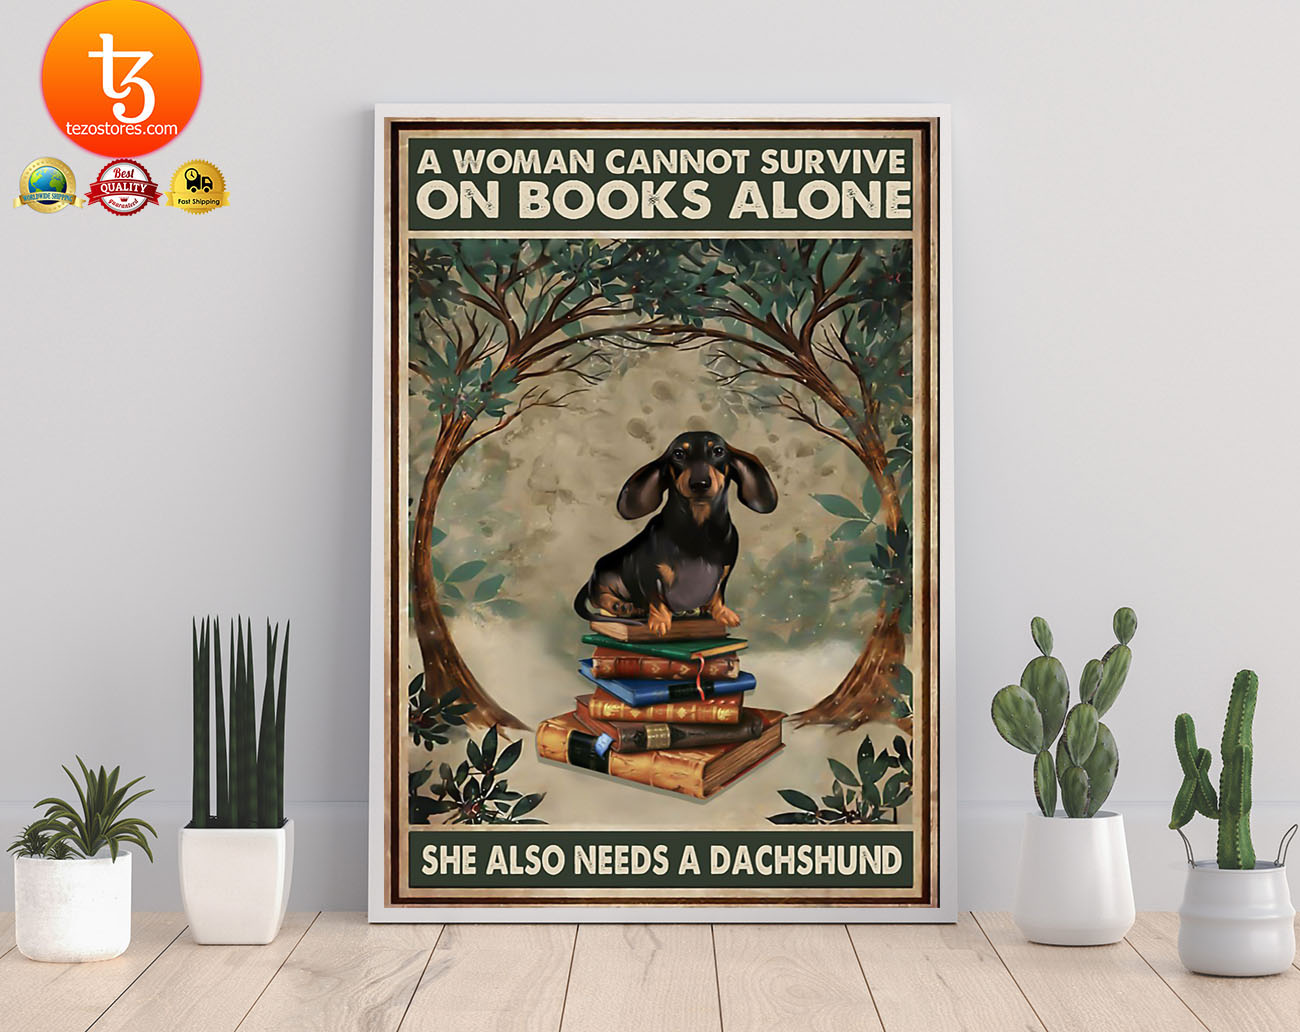 A-woman-cannot-survive-on-the-book-alone-she-need-dachshund-poster-22